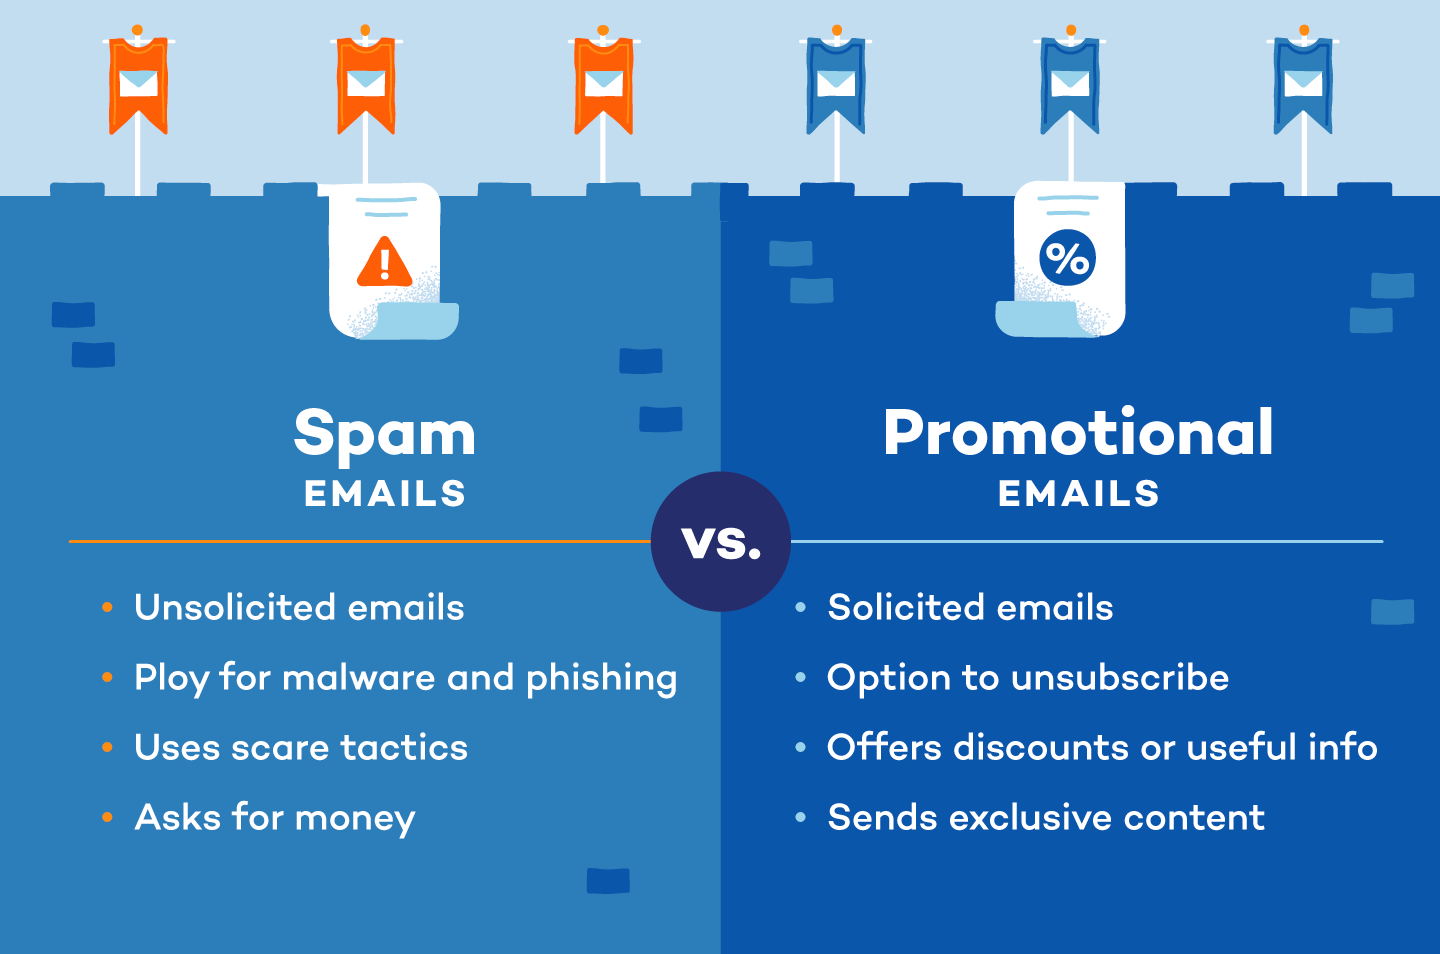 spam emails versus promotional emails